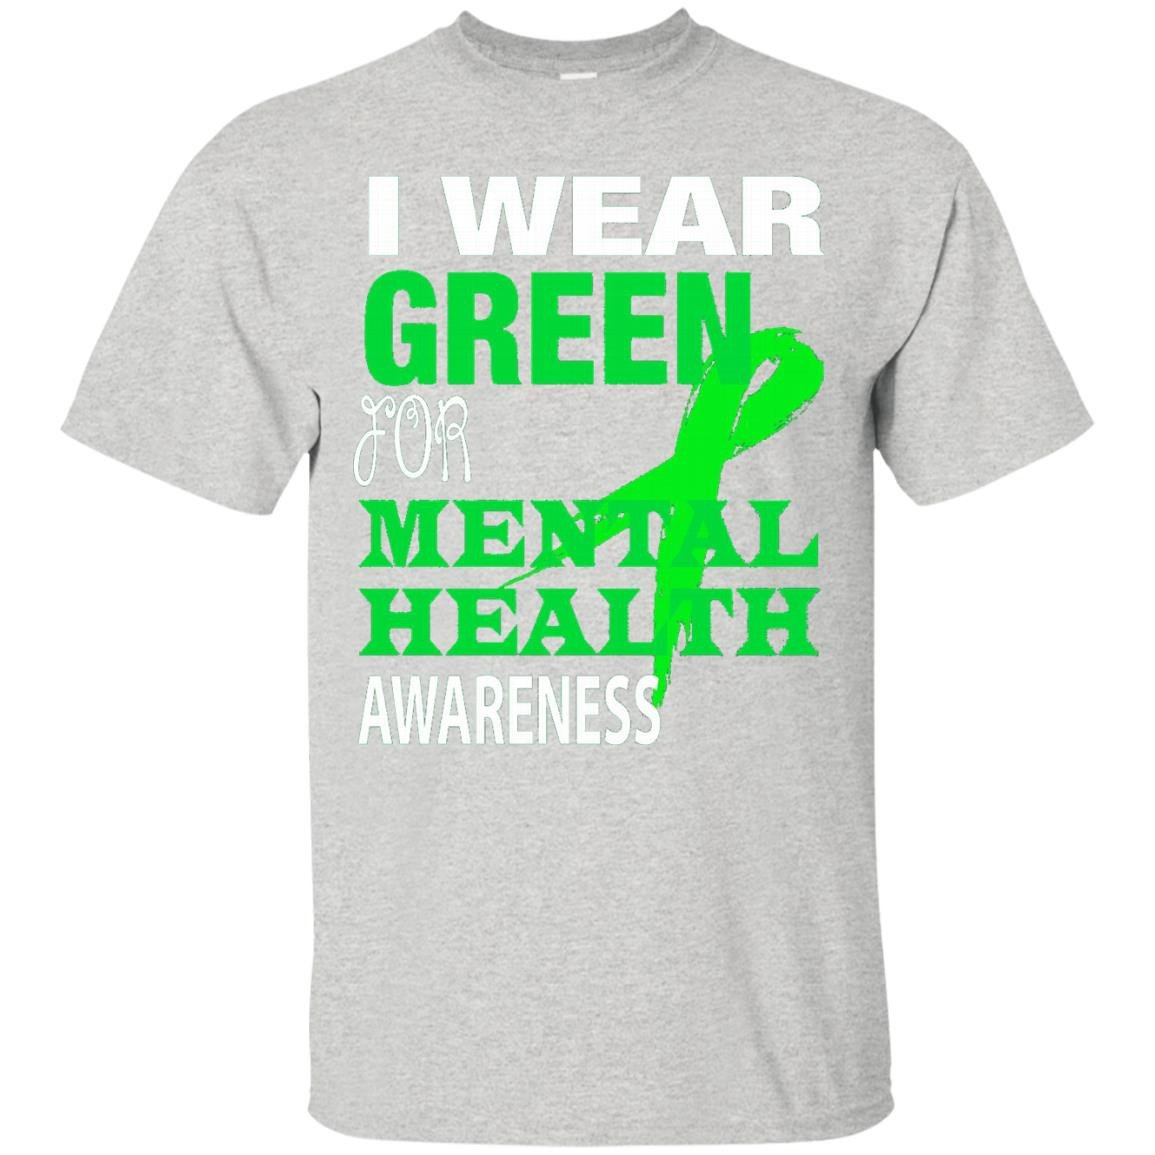 I Wear Green For Mental Health Awareness - T-Shirt